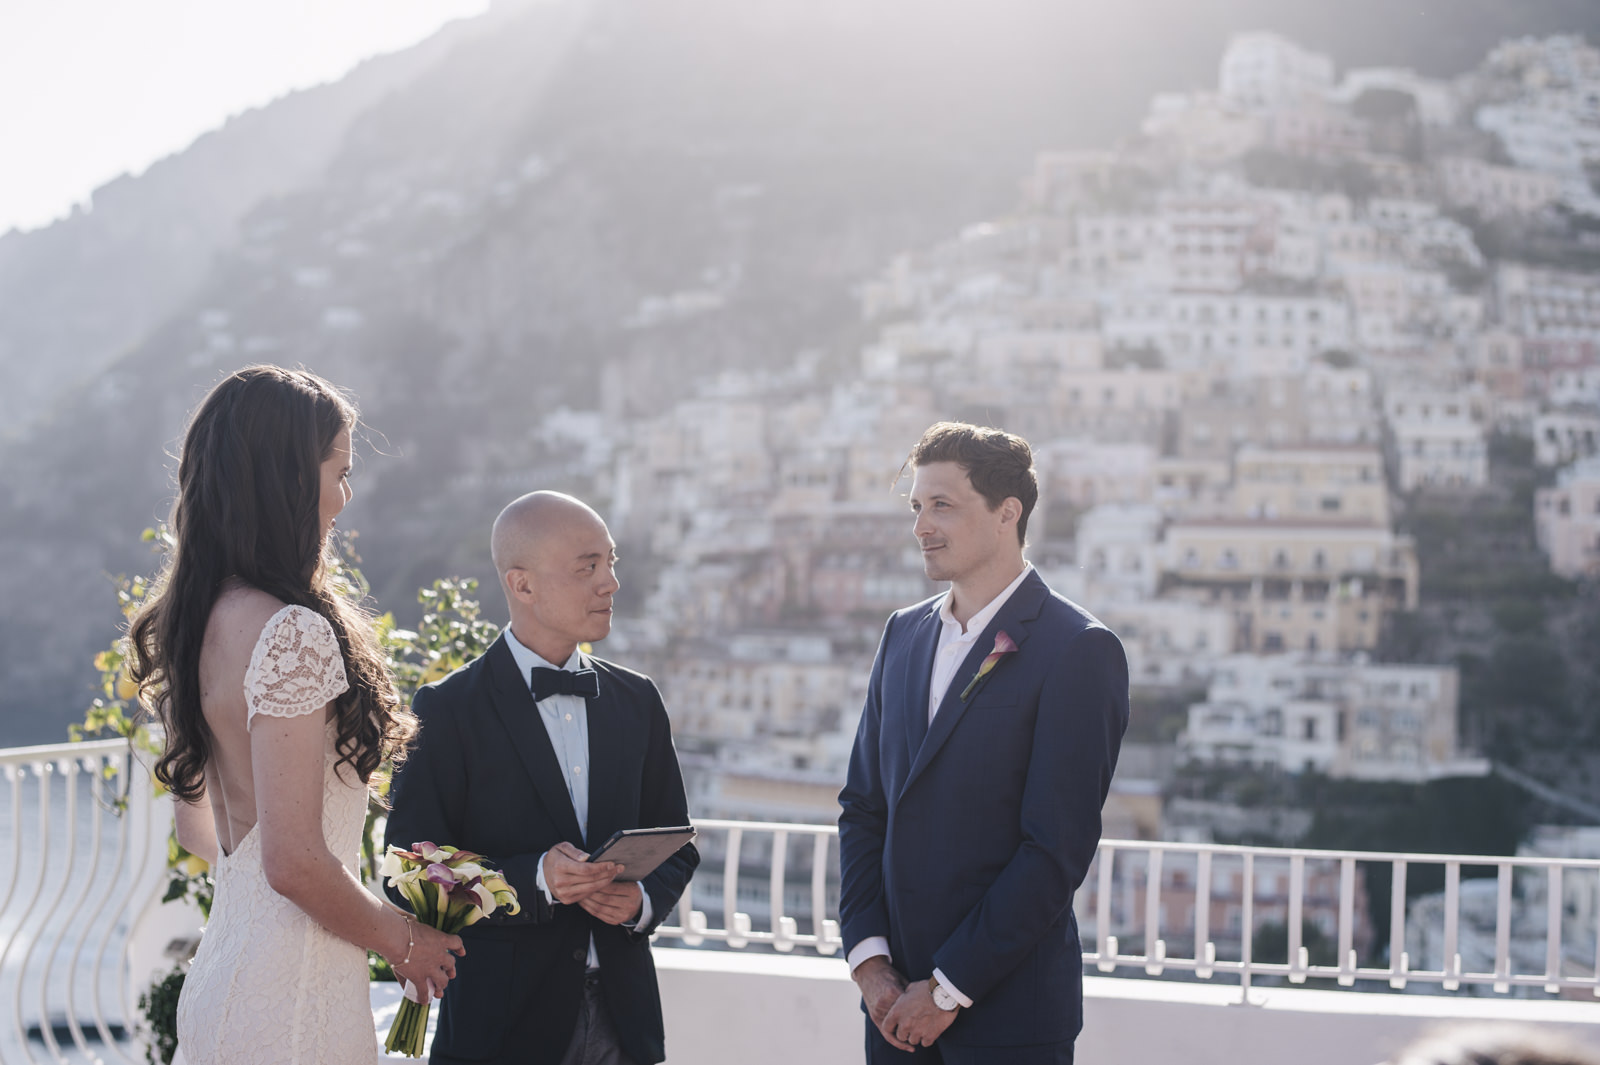 the bride, the groom and the celebrant during the wedding ceremony with positano as background